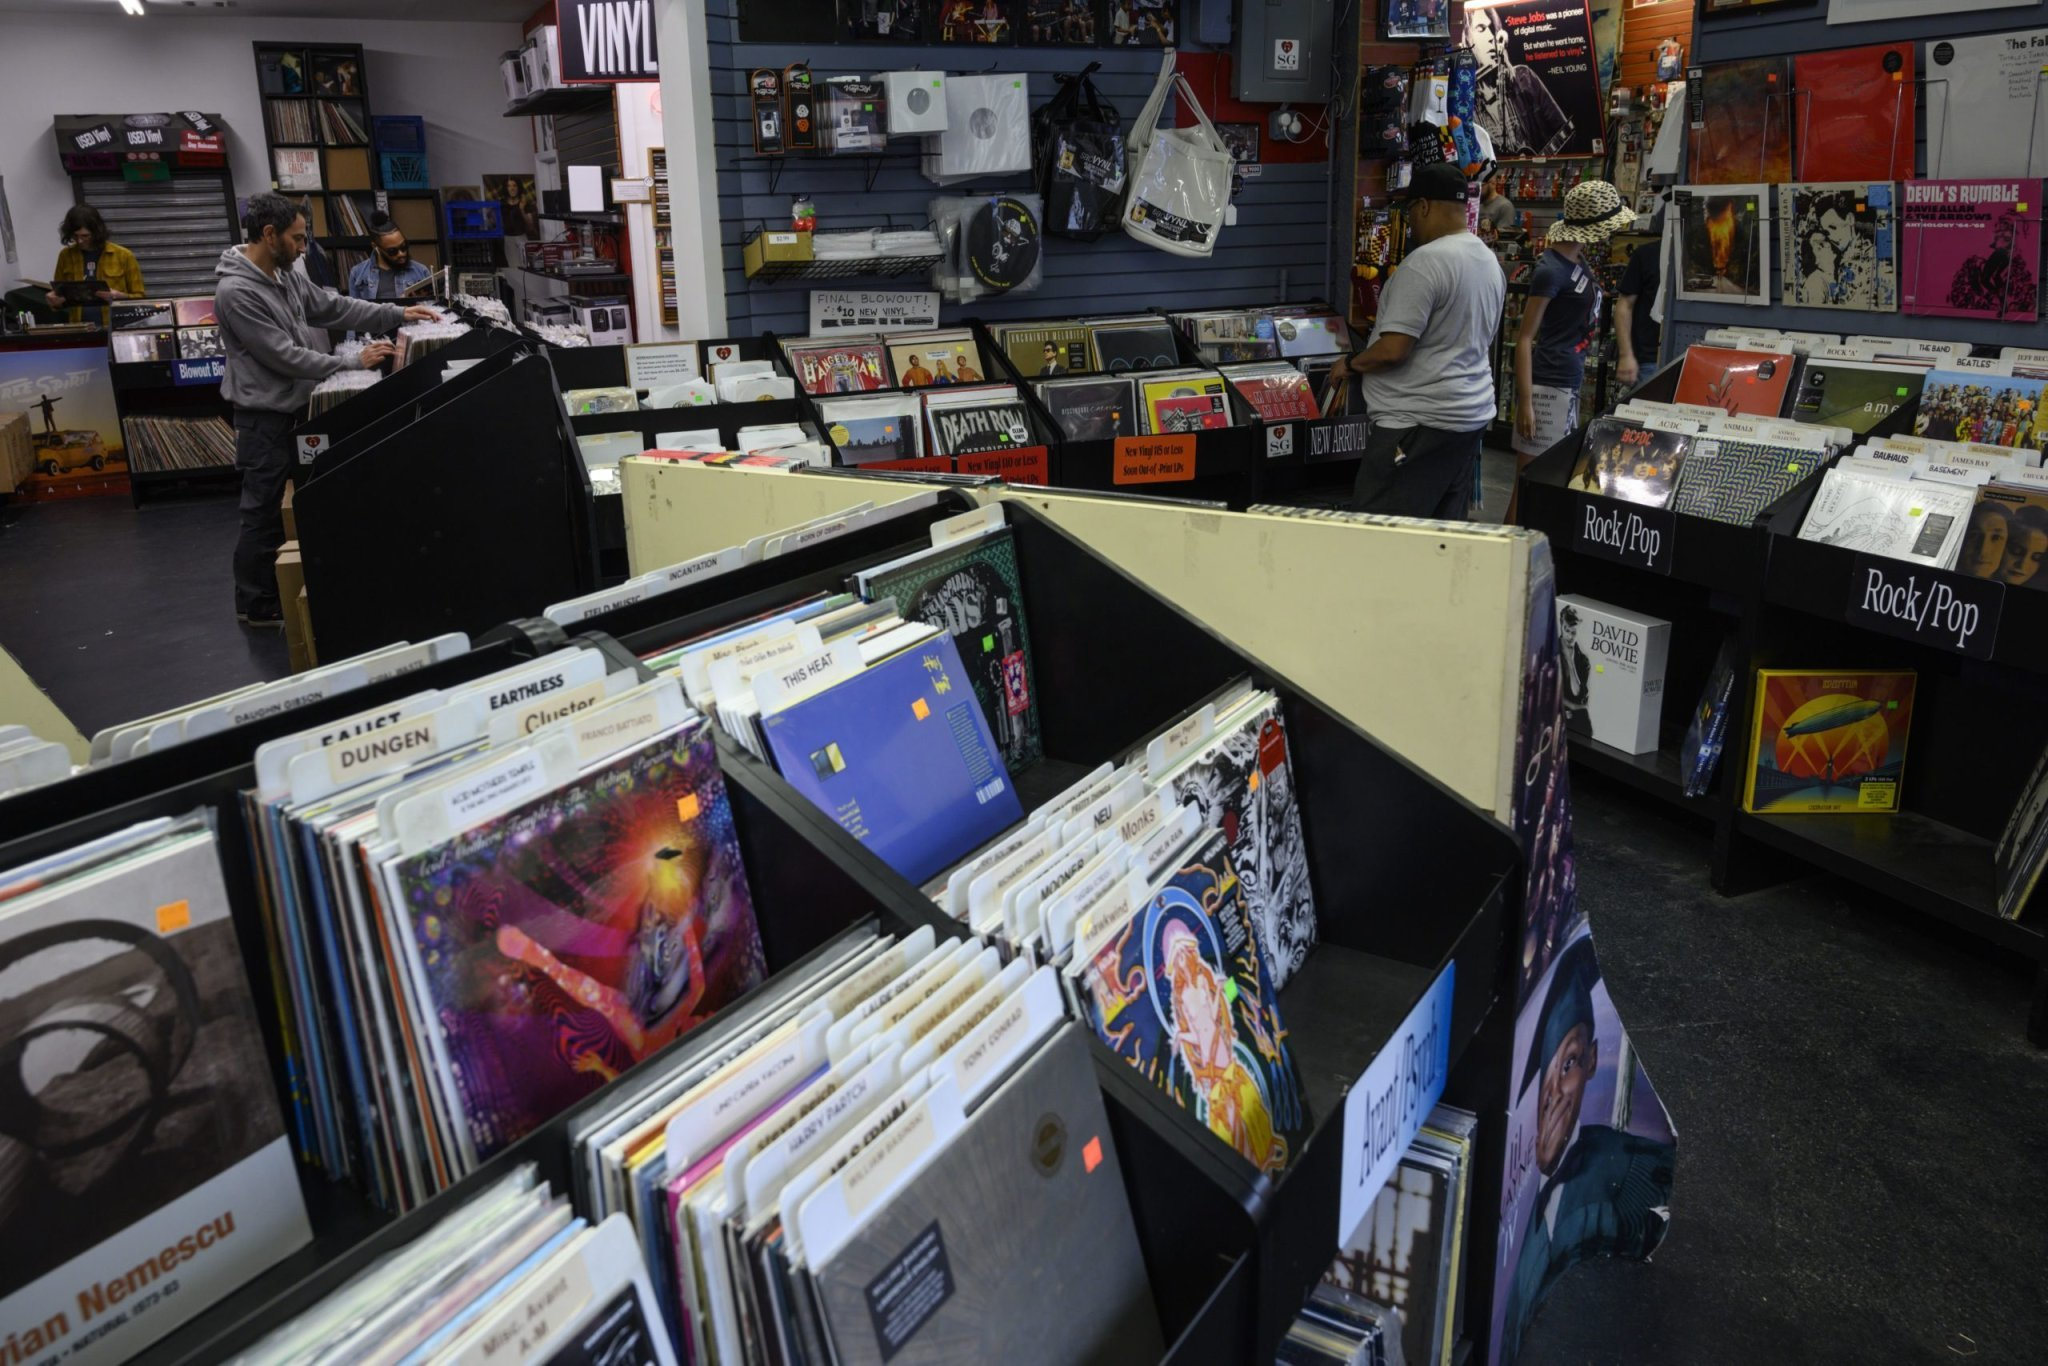 America's greatest record stores